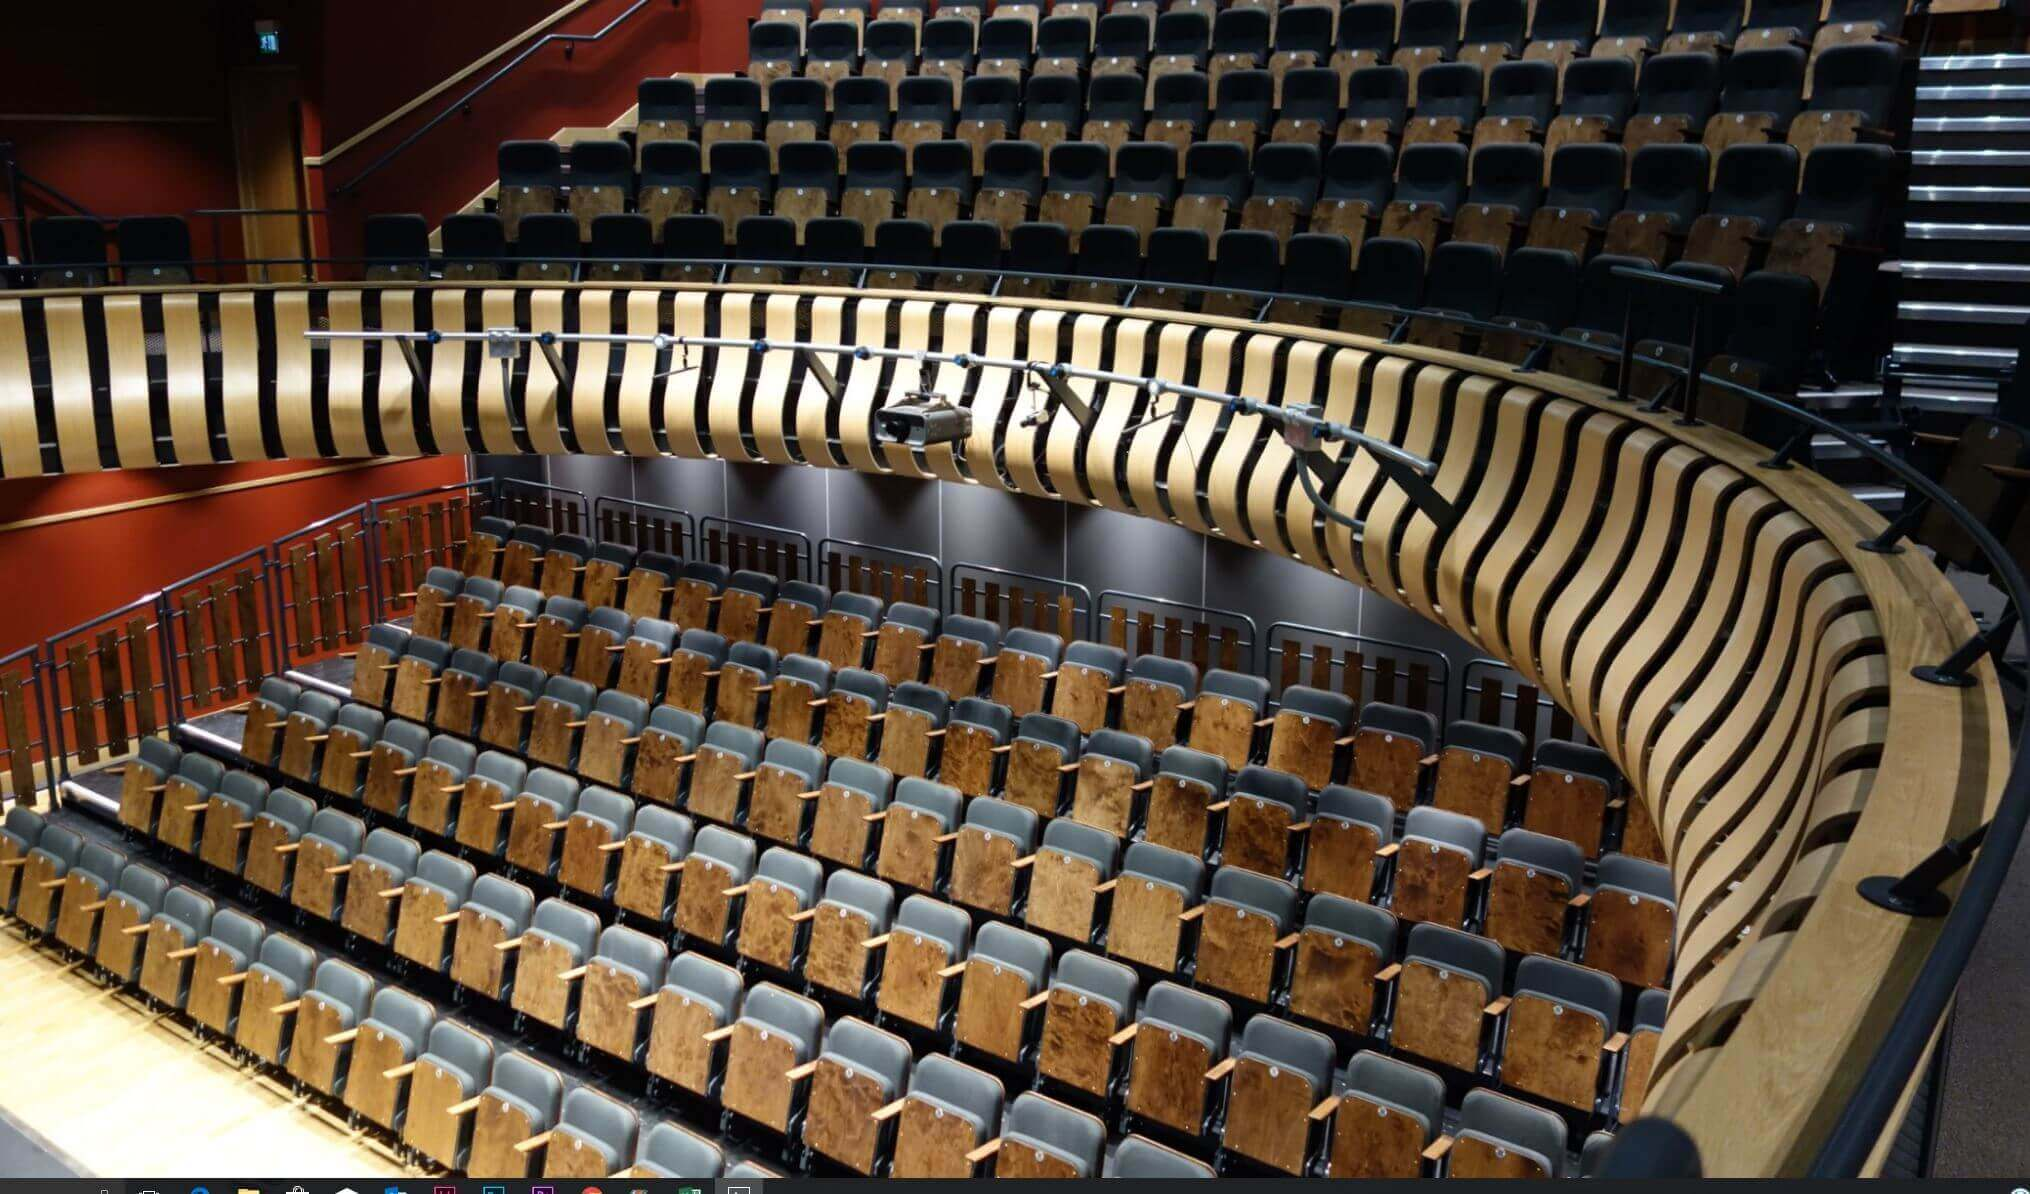 Retractable and theatre seating, Black chairs with wood surrounds